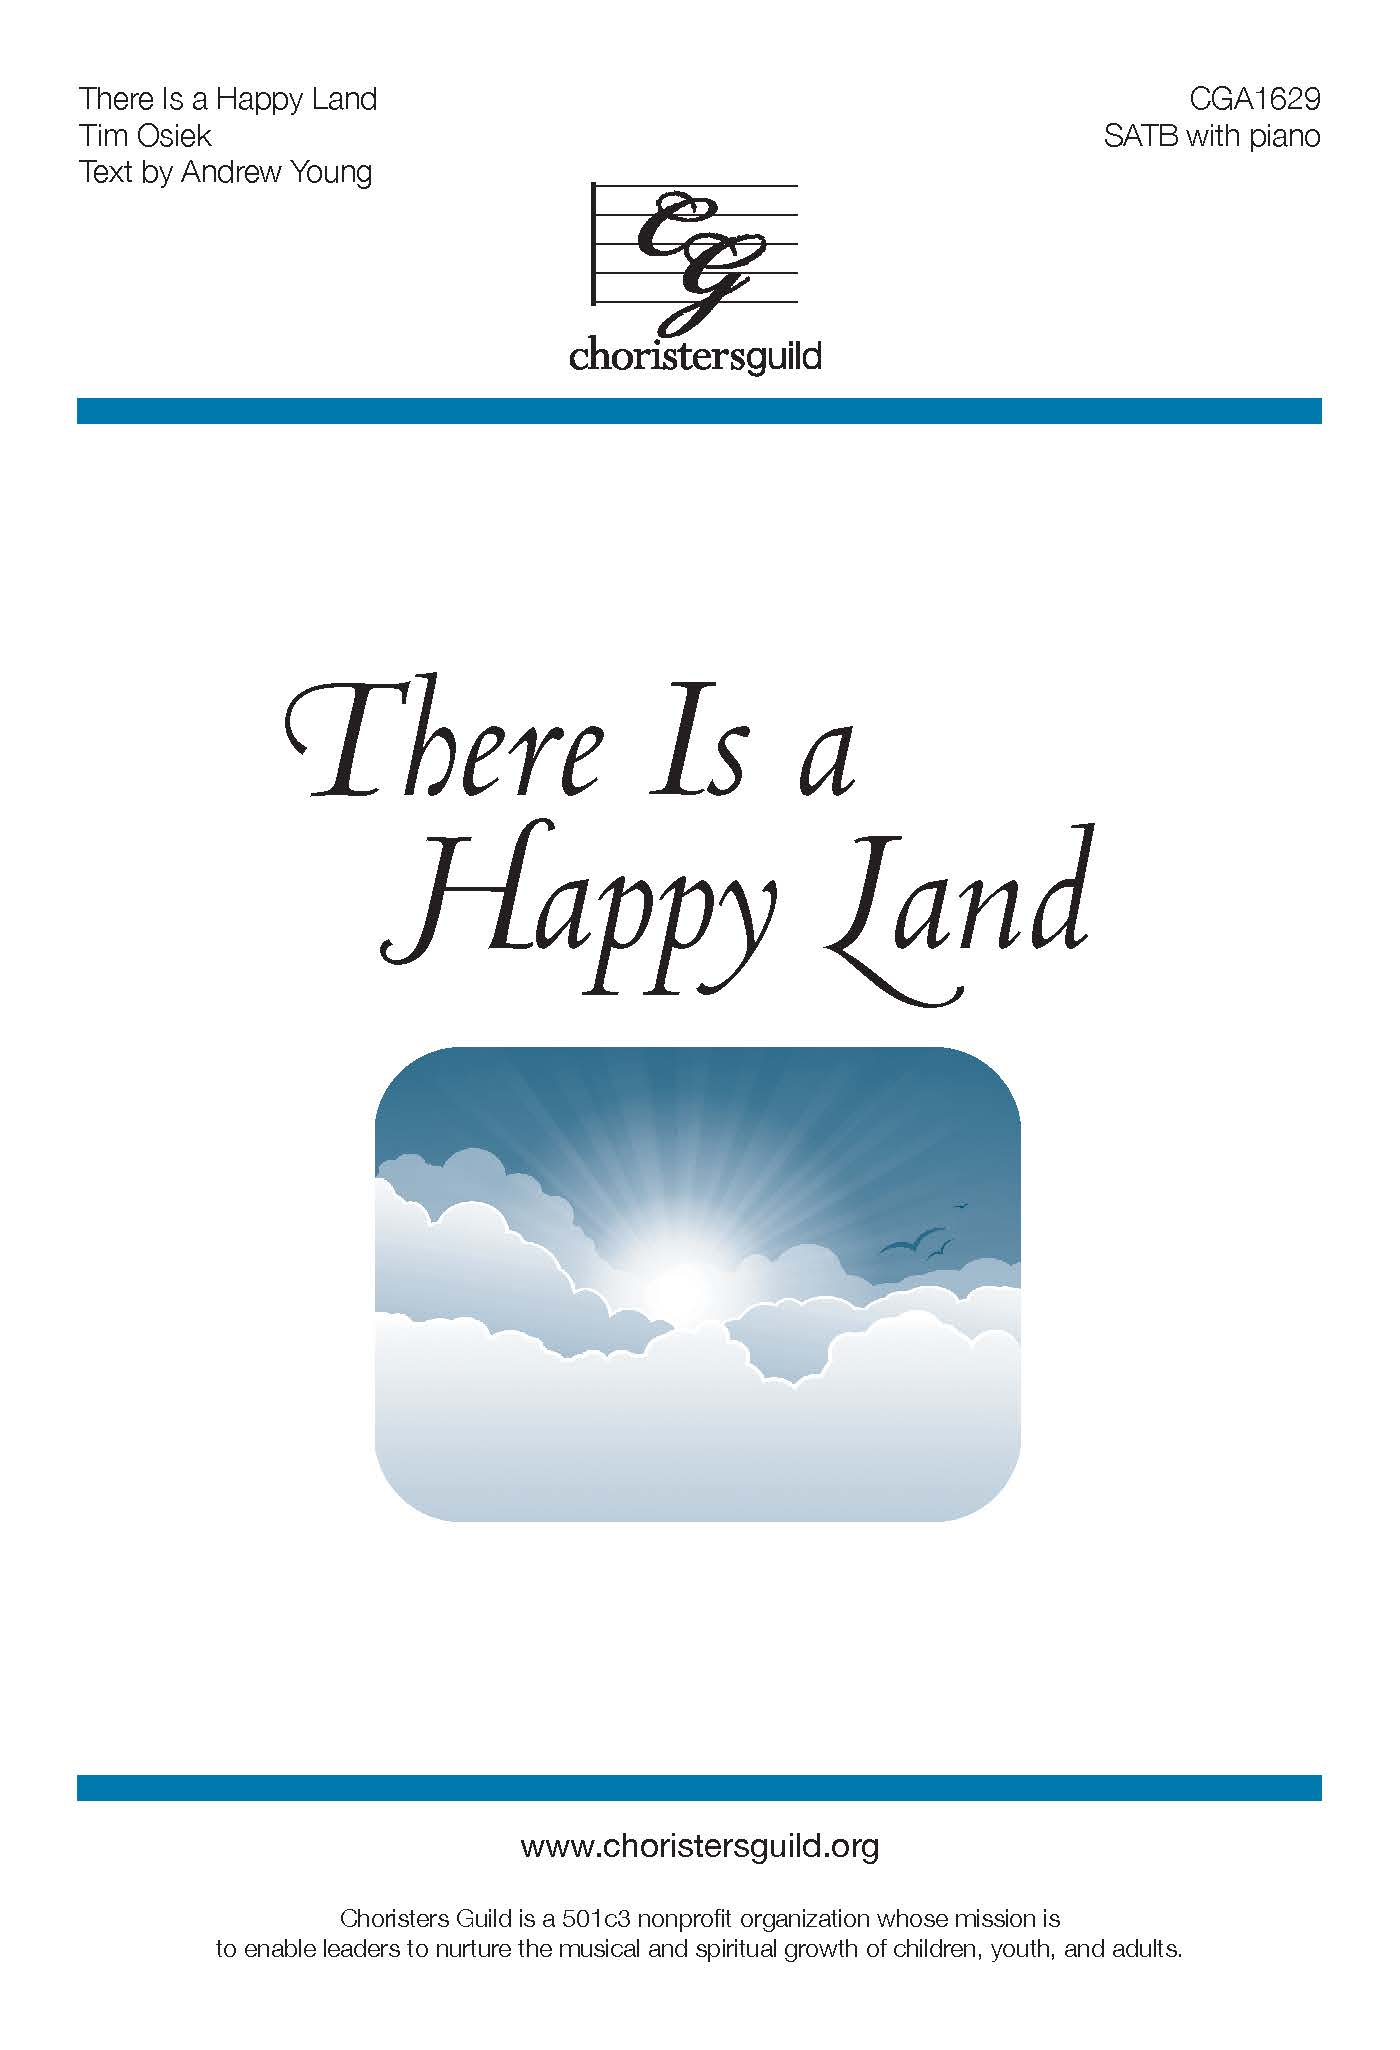 There Is a Happy Land - SATB